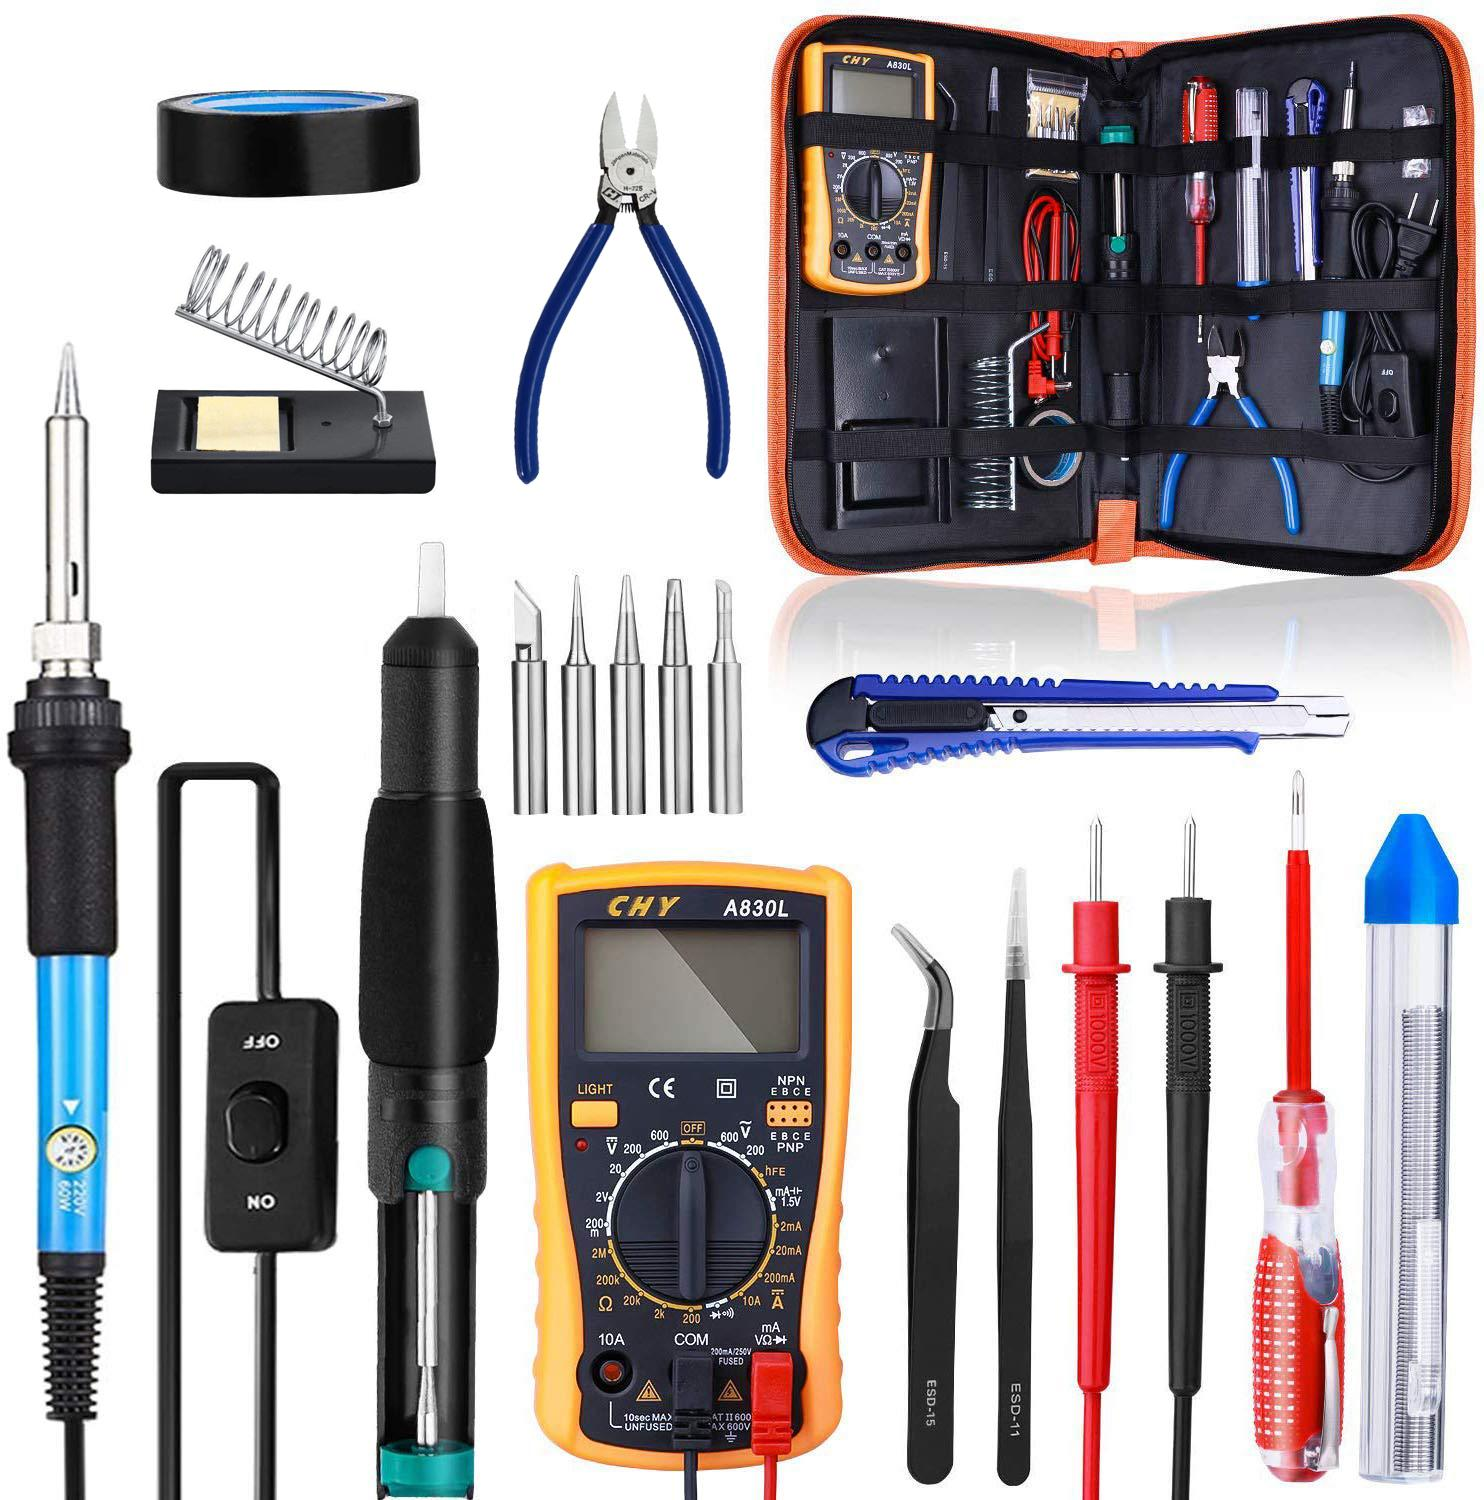 Soldering Iron Kit, 60W 220V/110V Welding Tool Adjustable Temperature Electric Soldering Iron Set Welding Solder Station